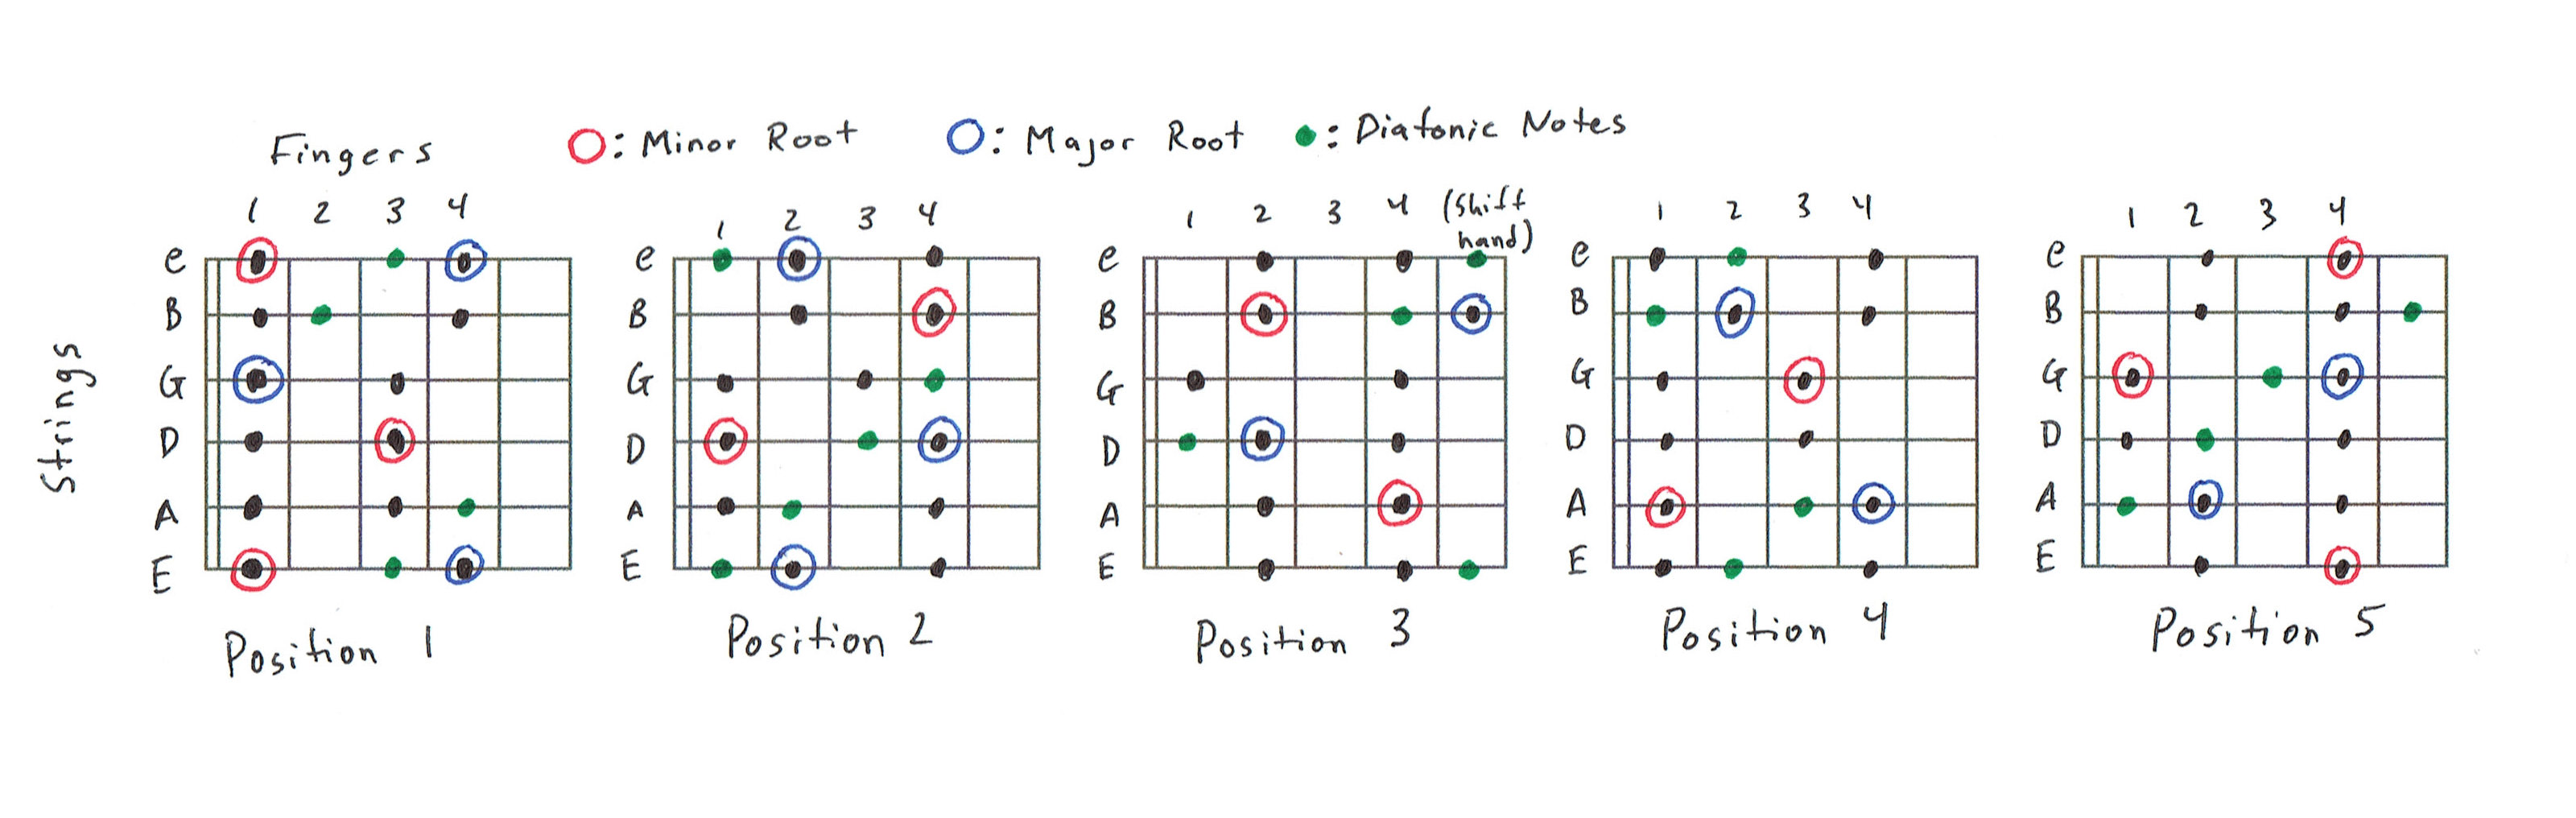 5 Position Diatonic Scale Charts